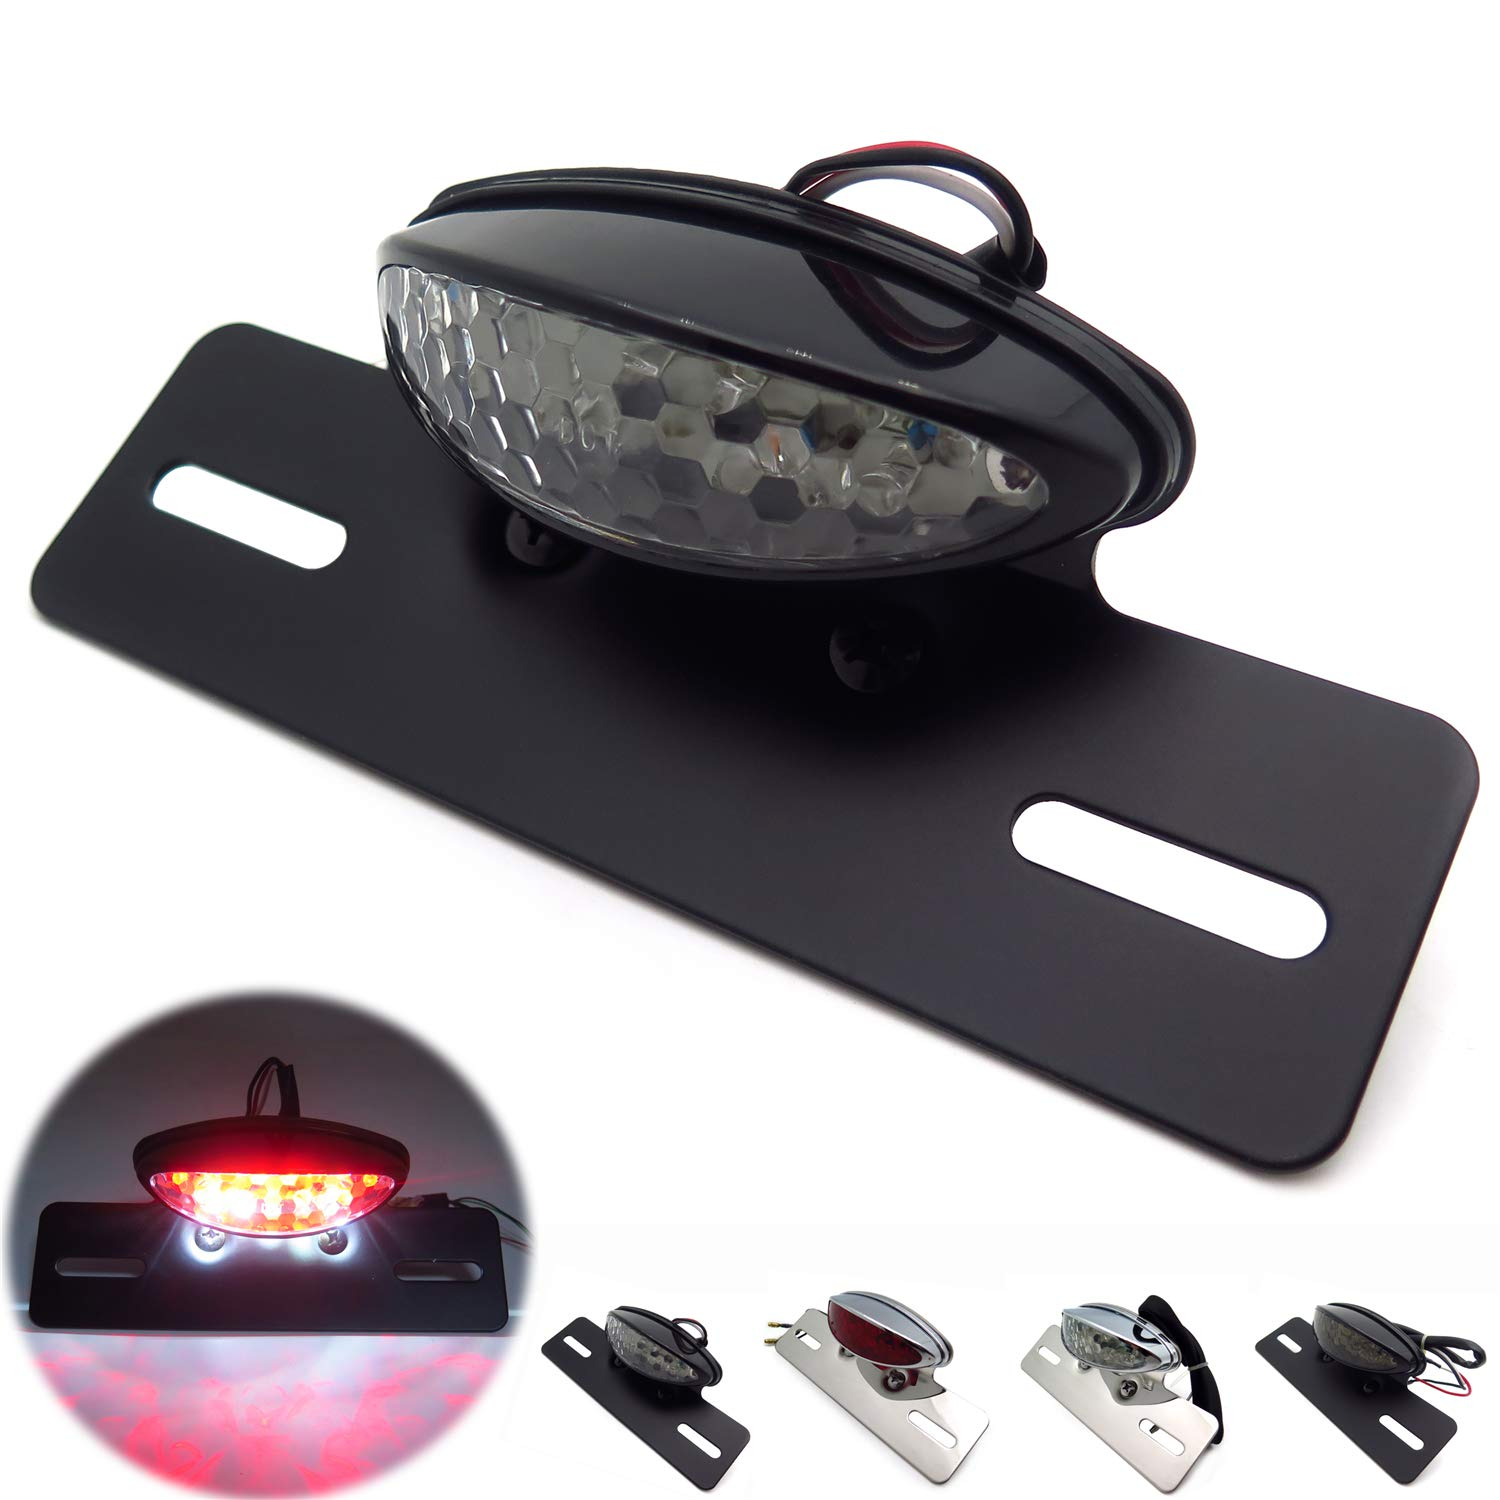 HONGK B01BI87X2A Motorcycle Black/ Clear LED/ Integrated/ Taillight/ License/ Plate/ Light/ Fender/ Eliminator/ Plate/ Compatible with Harley/ Honda/ Yamaha/ Suzuki/ Kawasaki